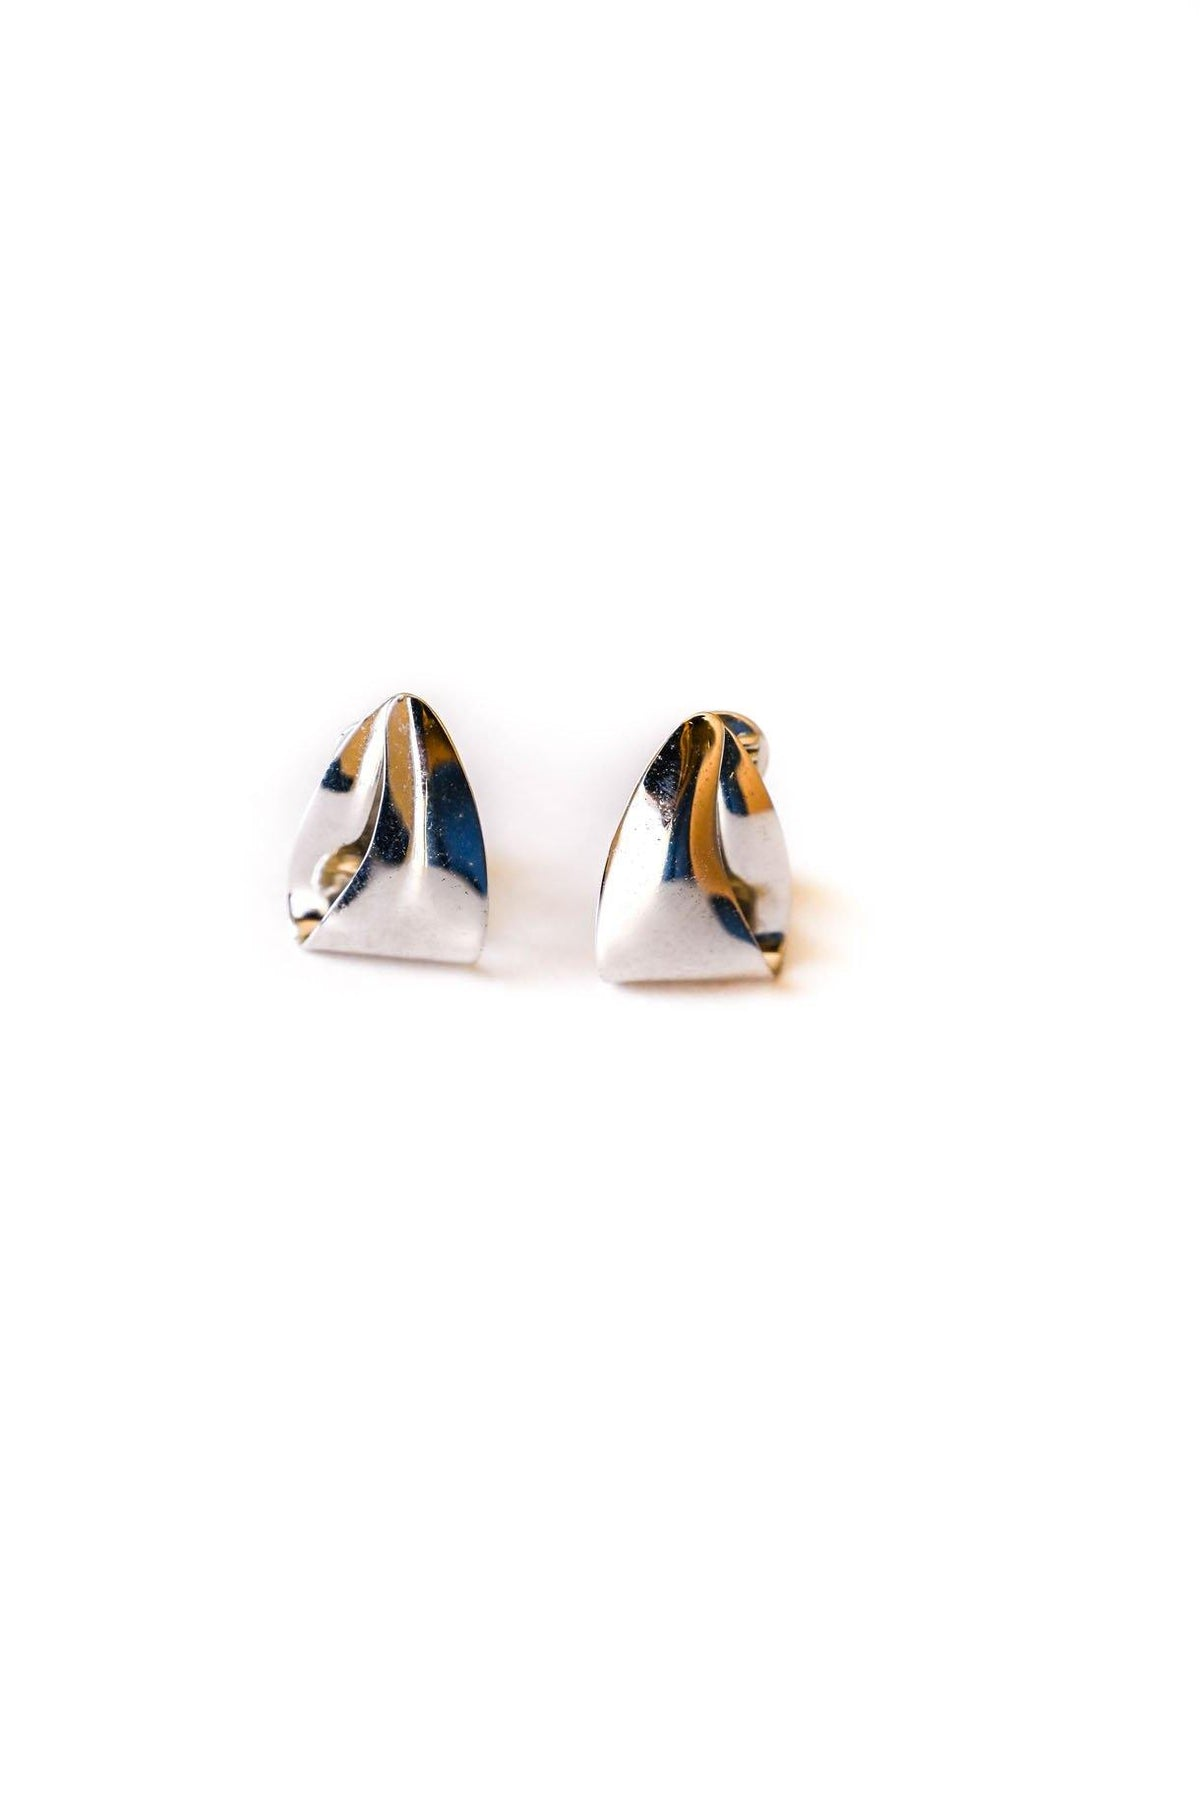 Silver Draped Triangle Clip-on Earrings - Sweet & Spark